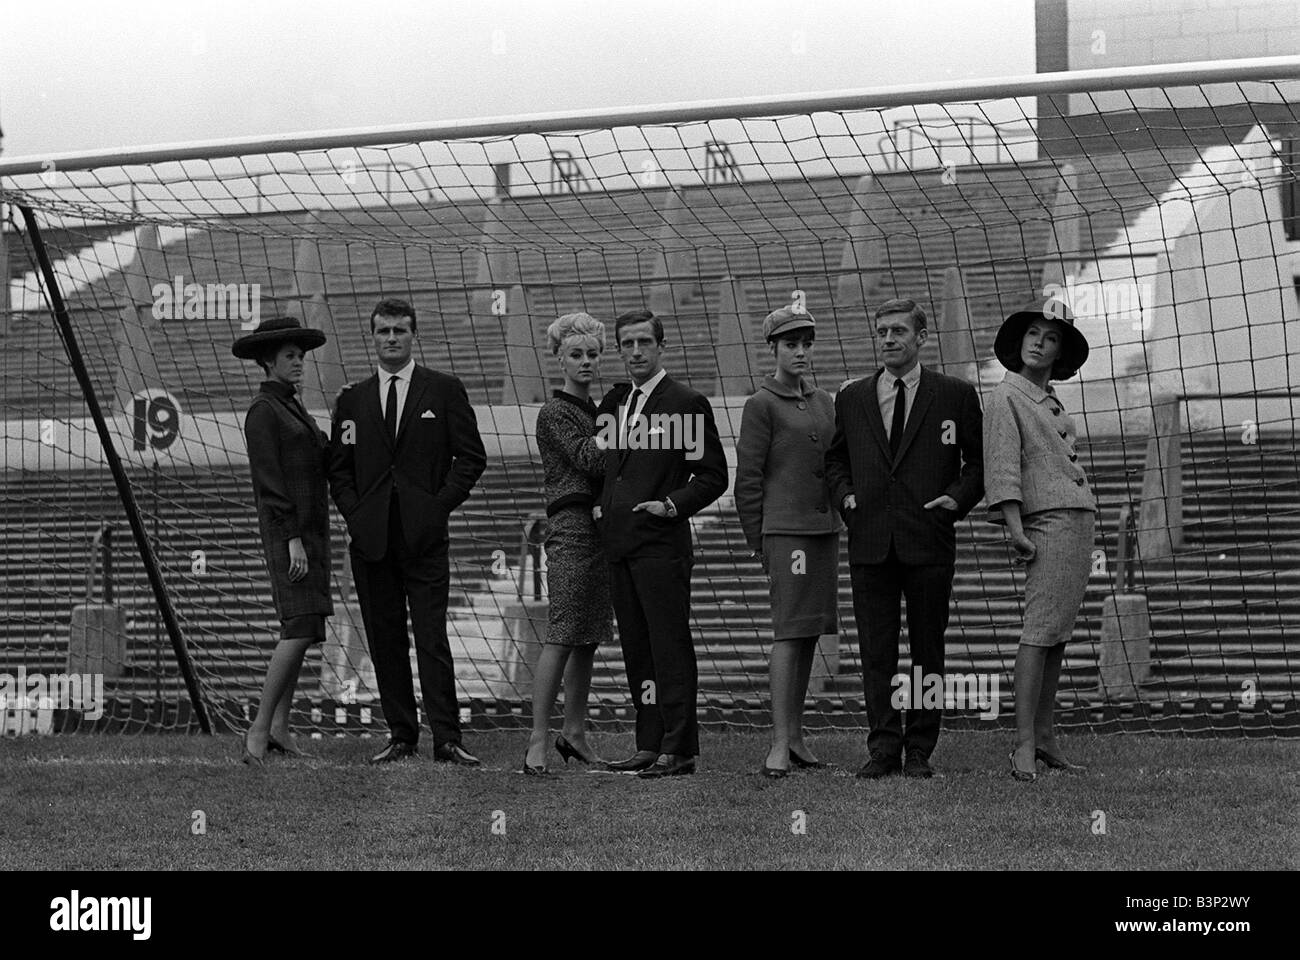 Noel Cantwell Of Manchester United September 1963 With Models And Stock Photo Royalty Free